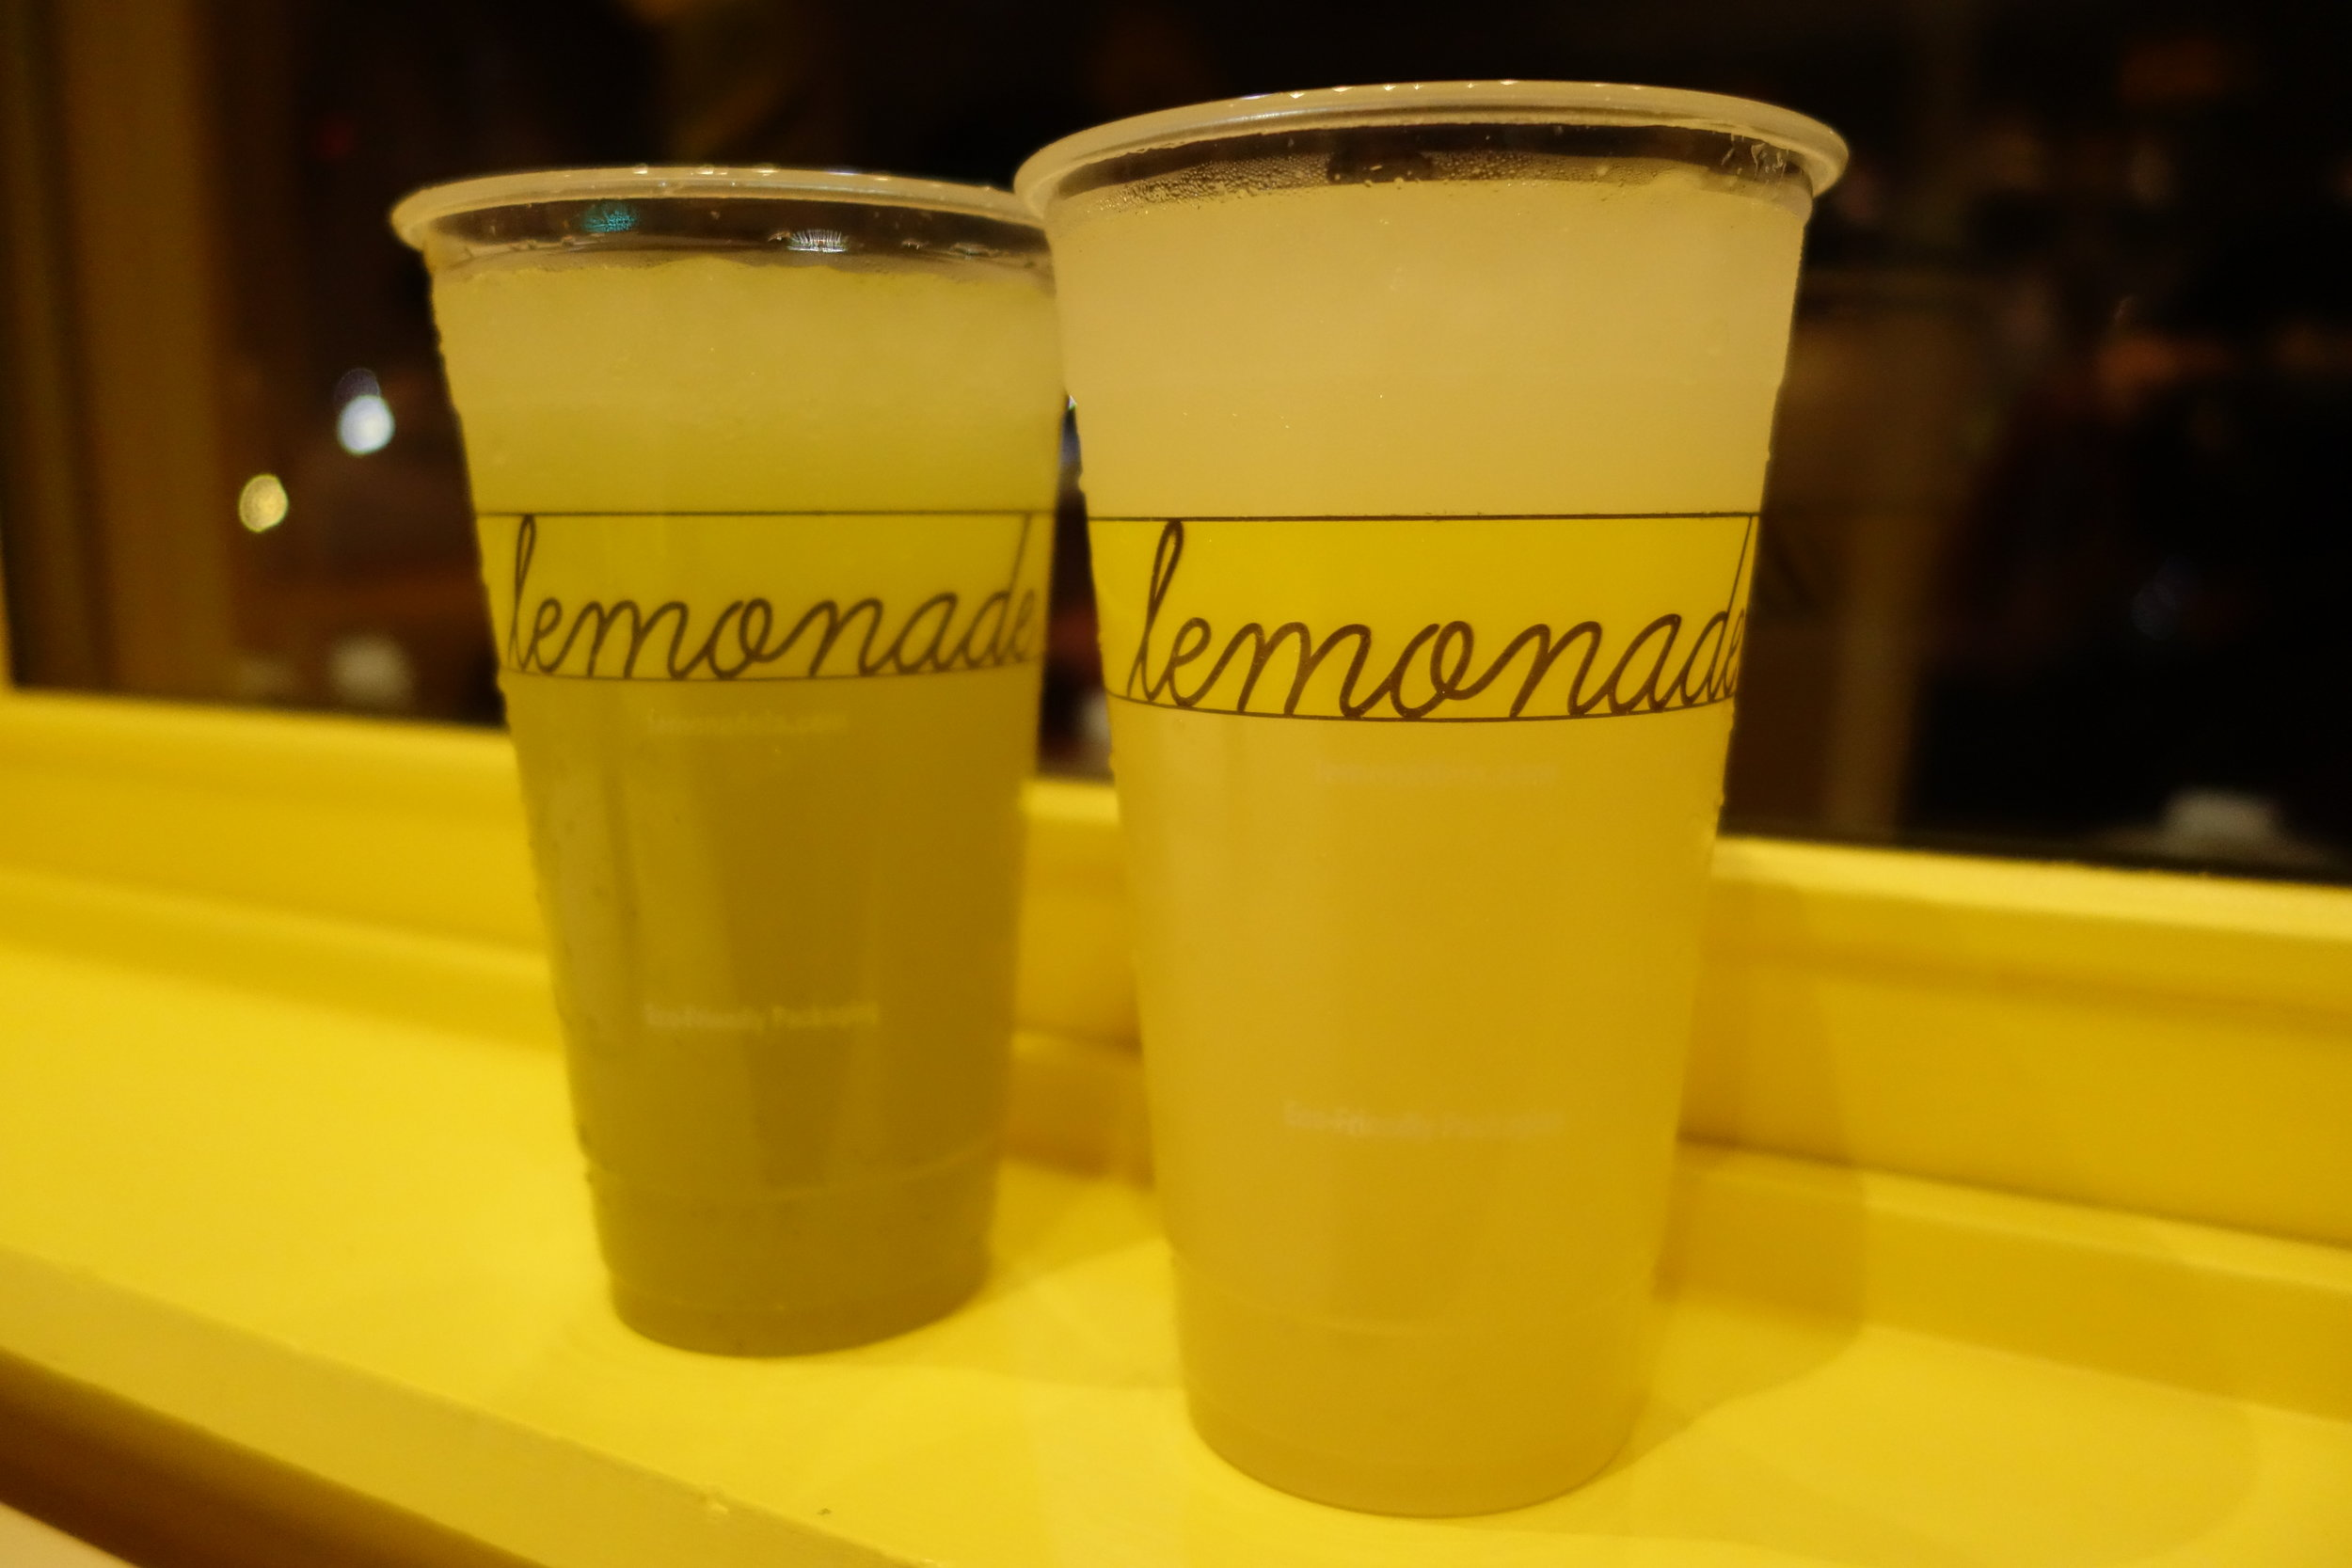 lemonade-walnut-creek-la-restaurant-sandybythebay-sffoodphotography (91).JPG